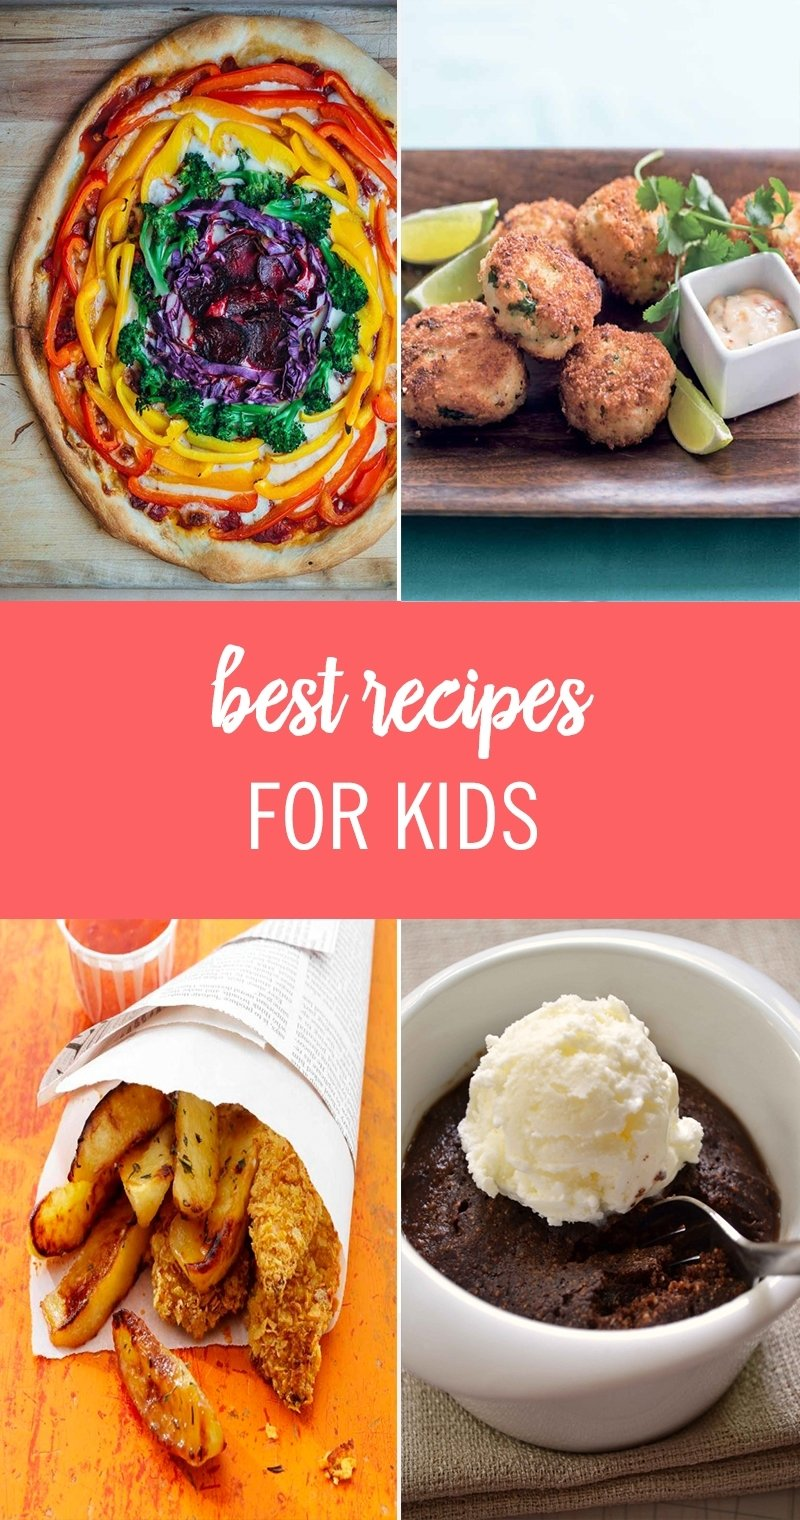 10 Spectacular Kids Lunch Ideas For Picky Eaters cooking for kids 50 best recipes for kids and picky eaters 2 2020